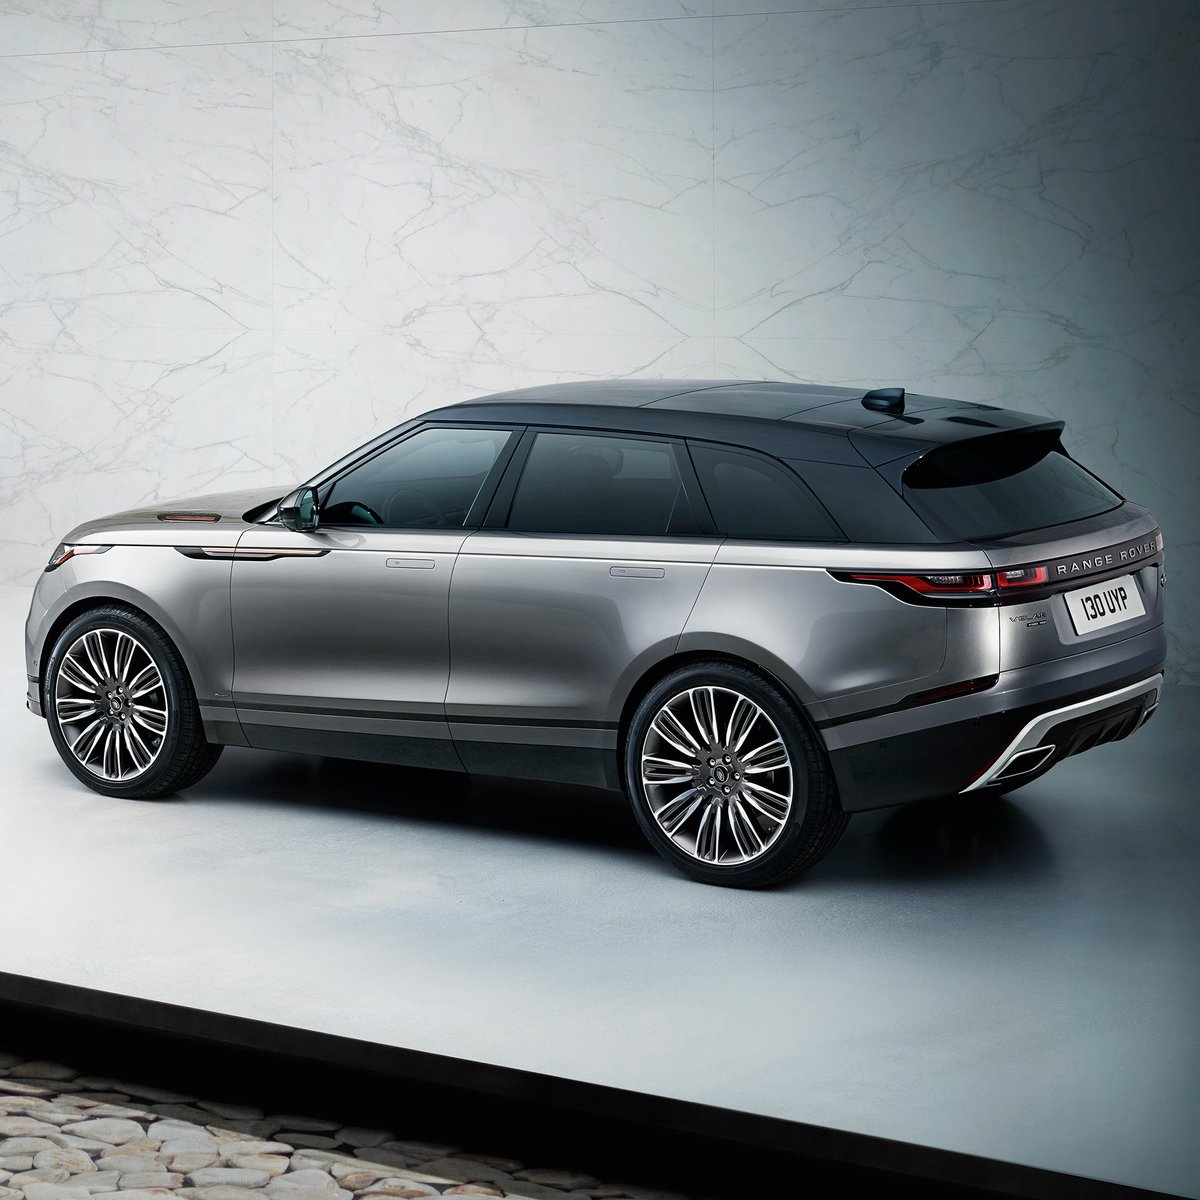 Range Rover Usa >> Land Rover Usa On Twitter Simplicity Is The Ultimate